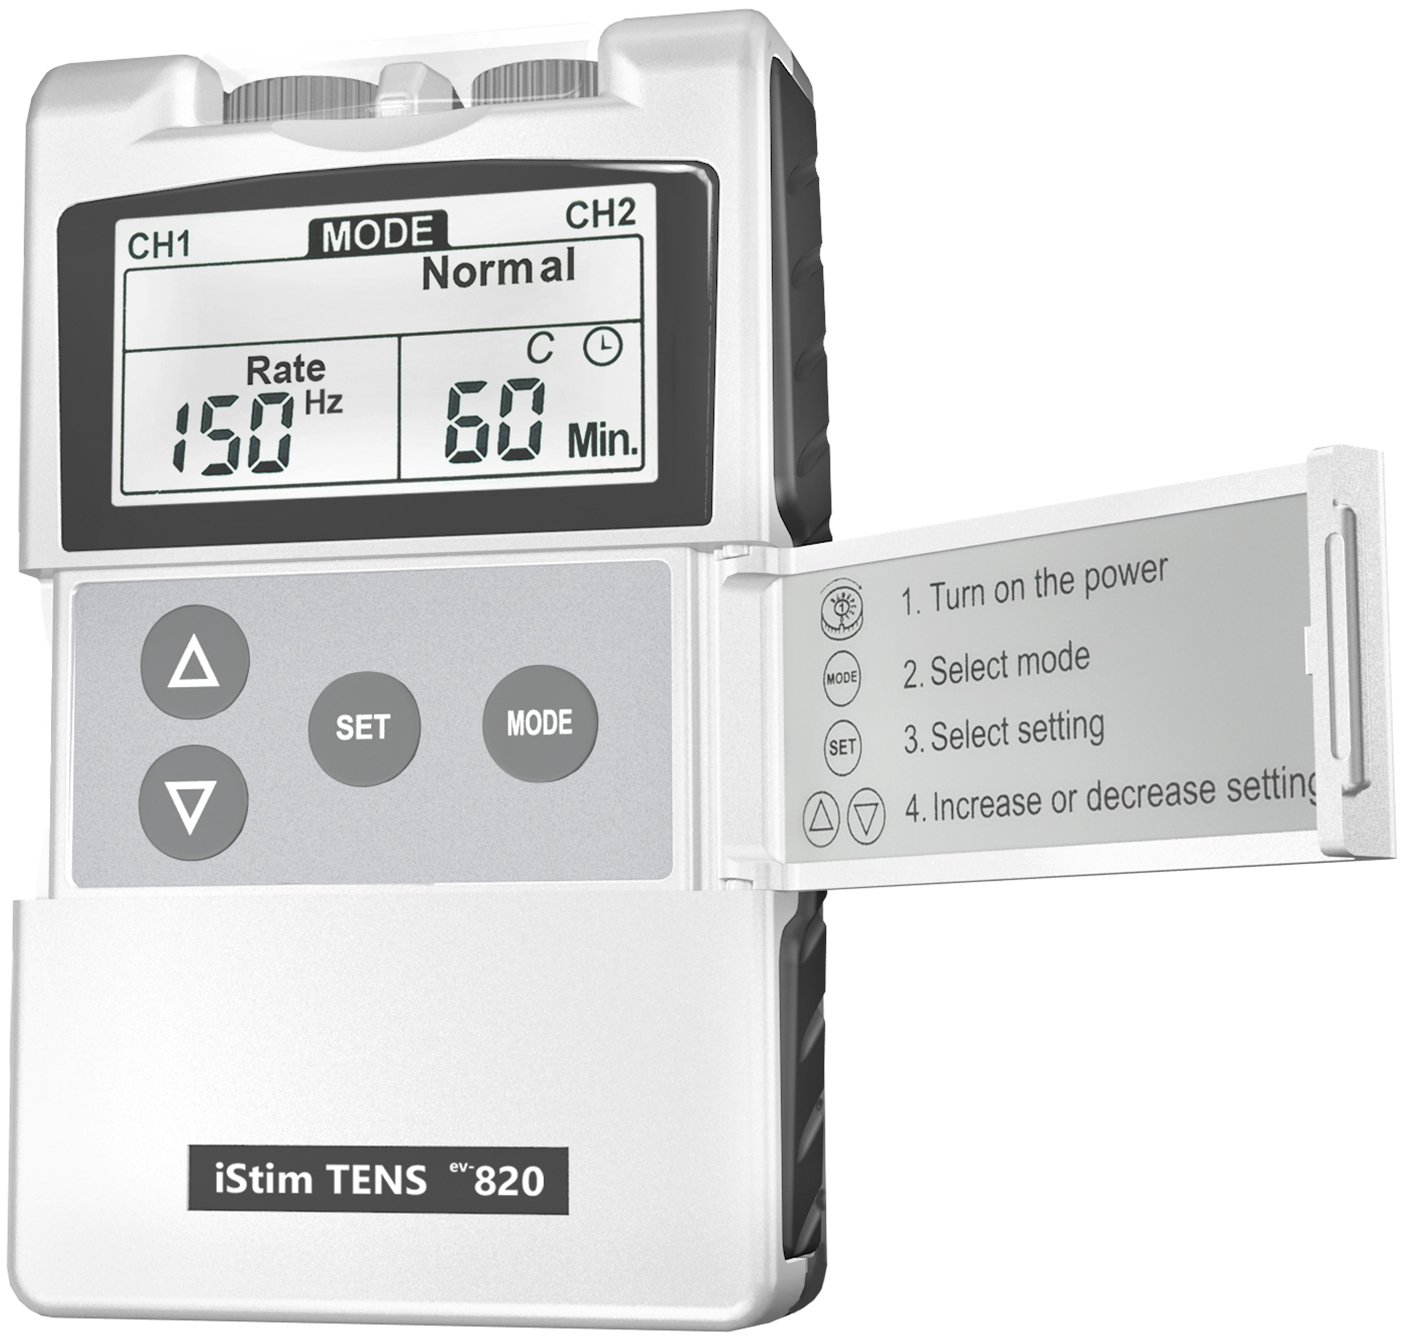 FDA Cleared TENS Unit iStim EV-820 TENS Machine for Pain Management, Back Pain and Rehabilitation by iSTIM (Image #2)